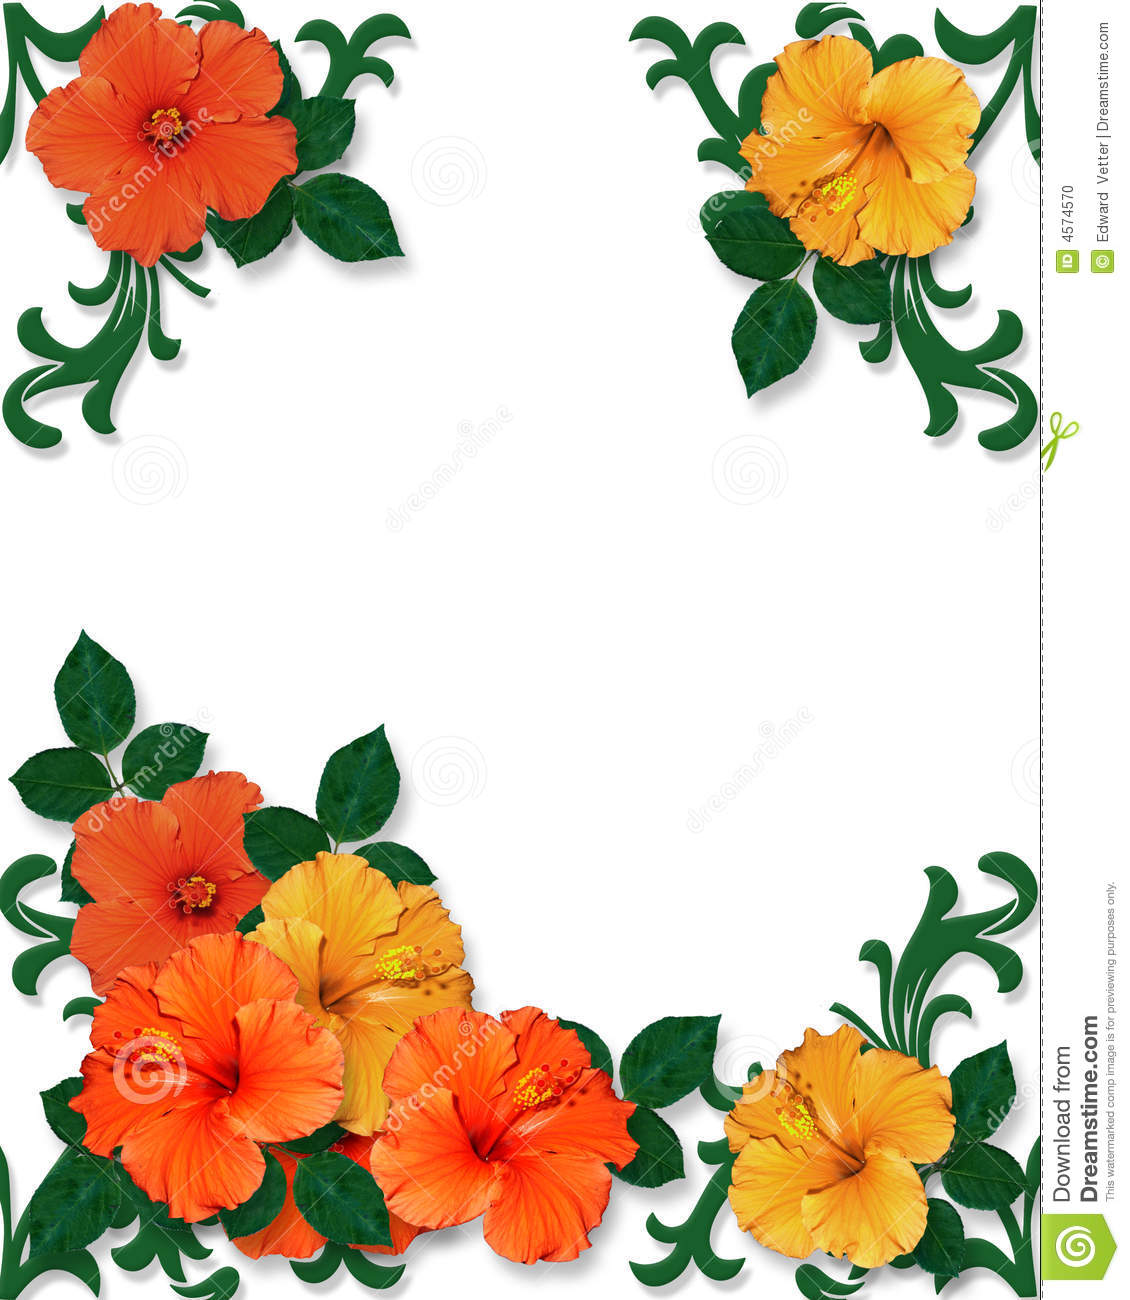 Luau Clip Art Borders Free | Clipart Panda - Free Clipart Images